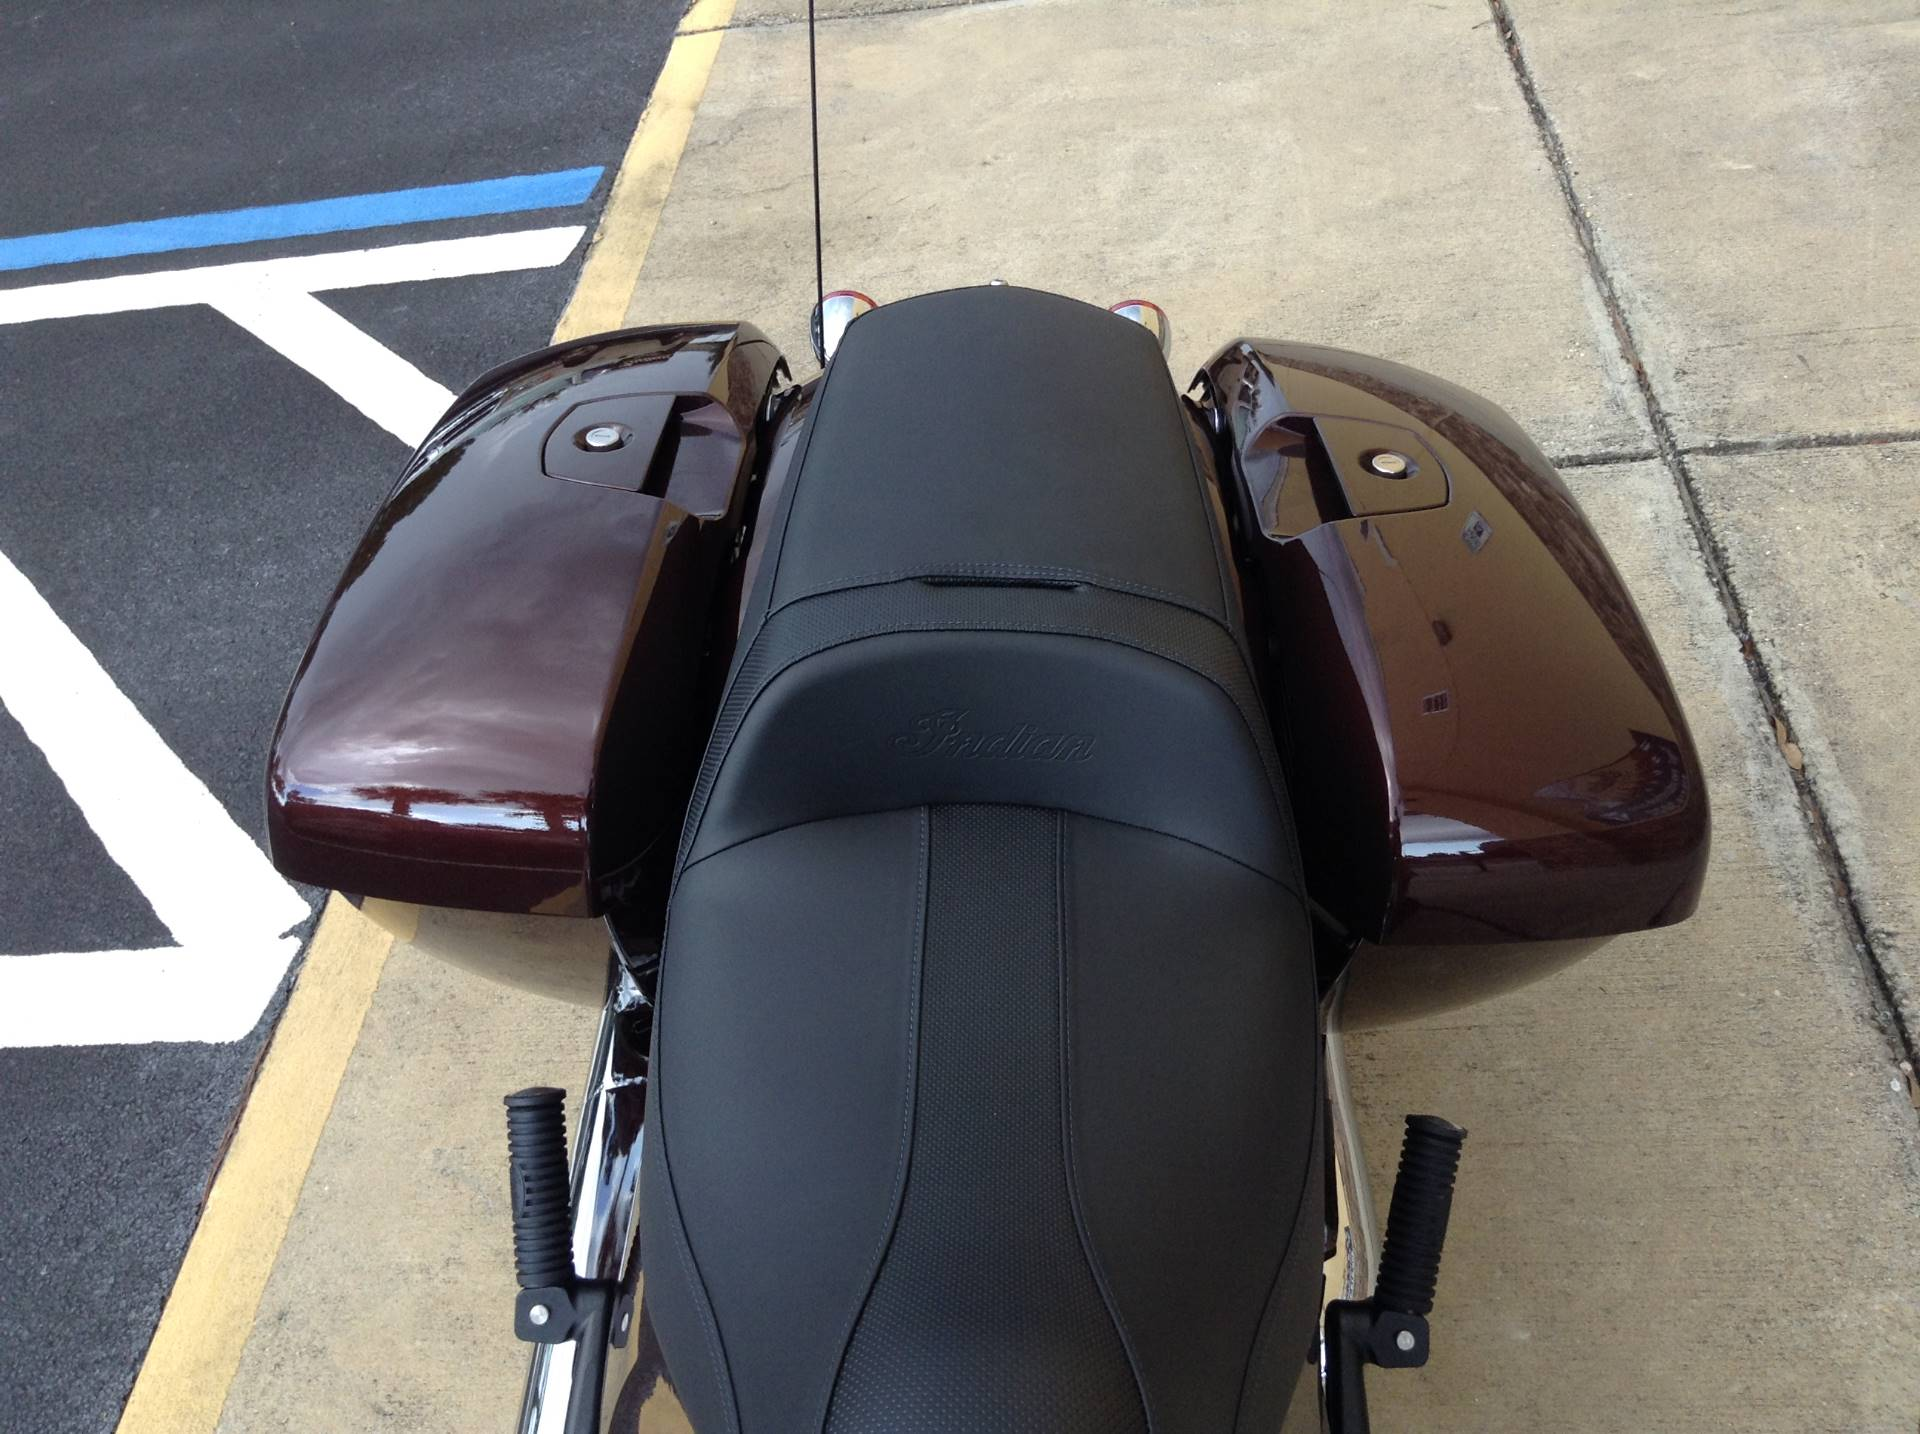 2019 Indian CHIEFTAIN LIMITED in Panama City Beach, Florida - Photo 16